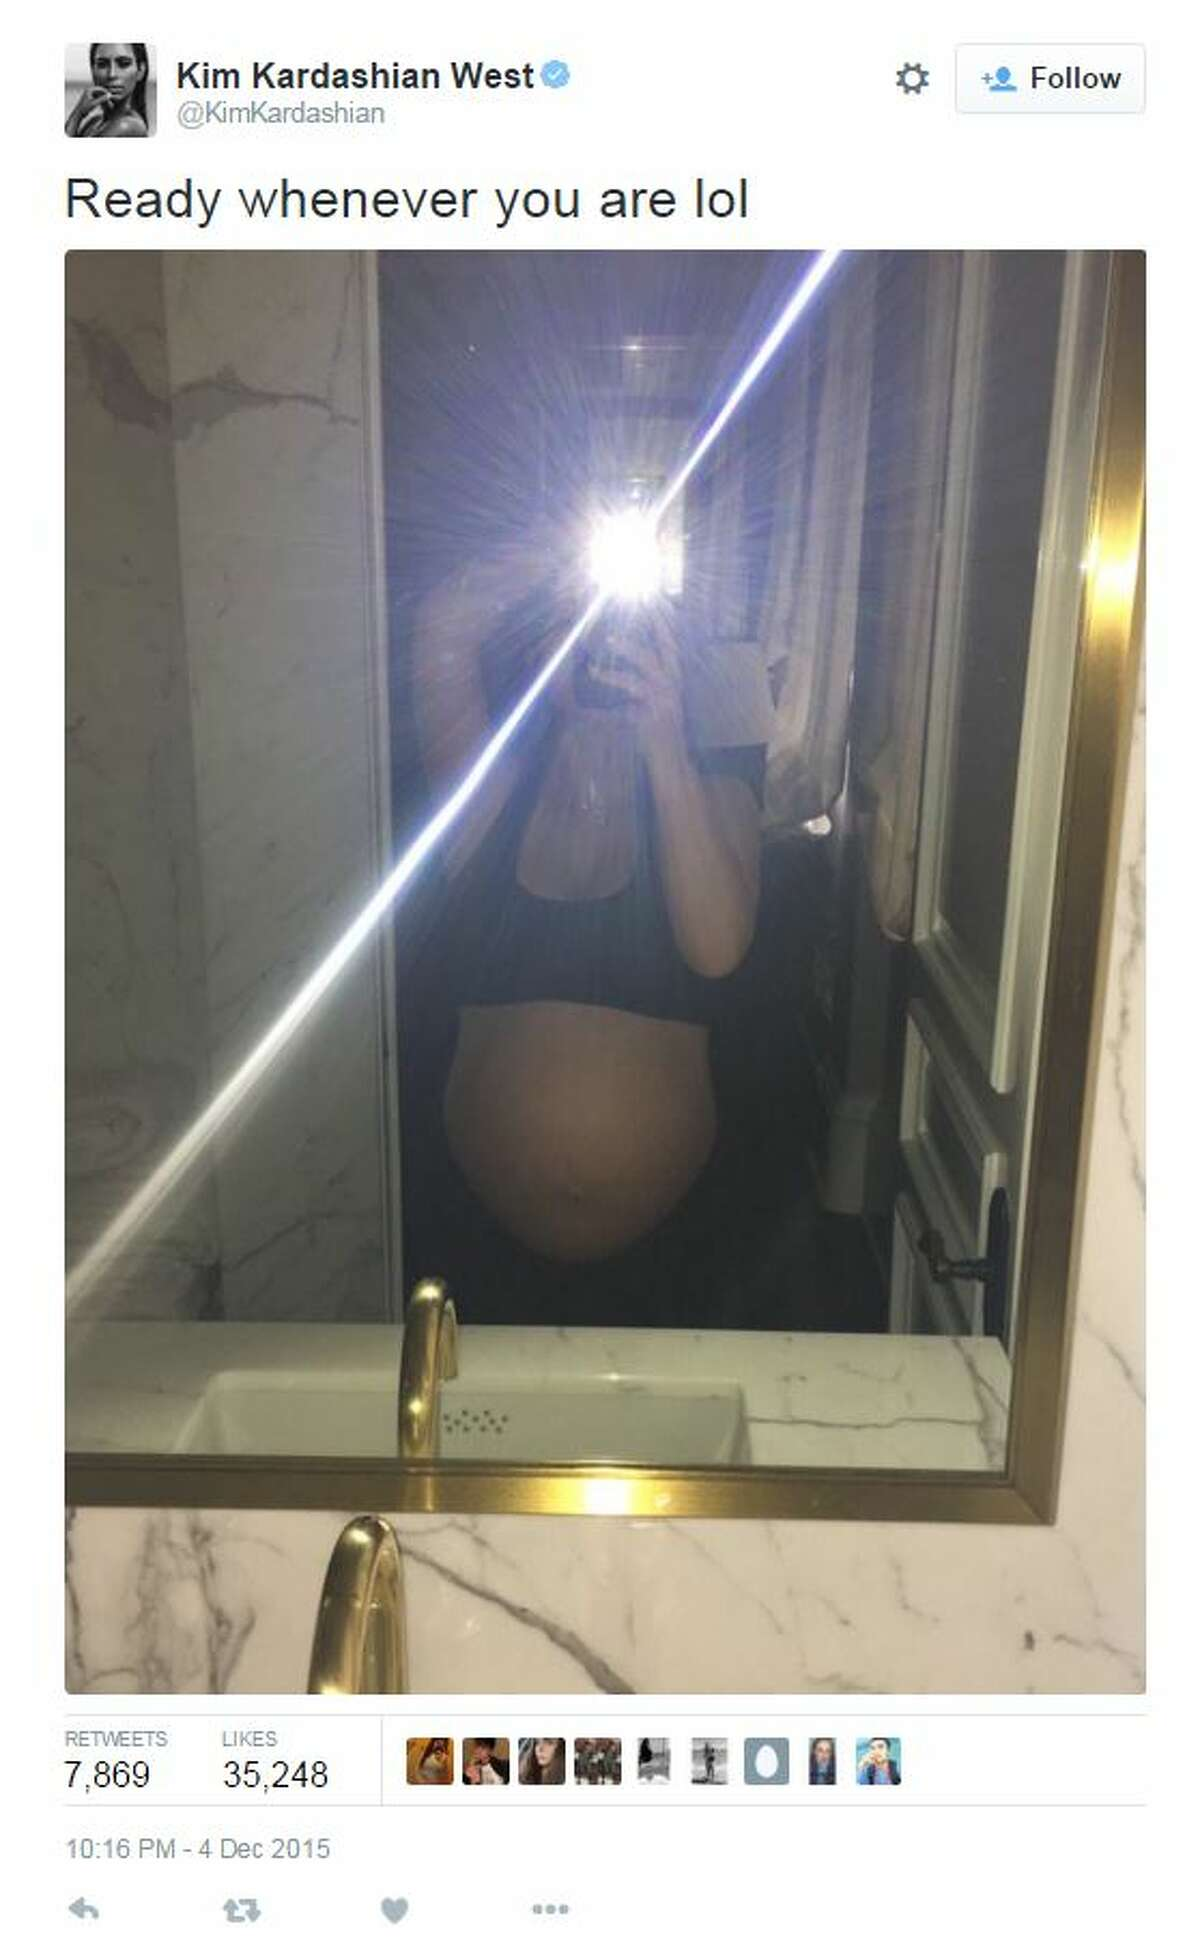 Kim Kardashian gave birth to a healthy baby boy, her second child with rapper Kanye West.